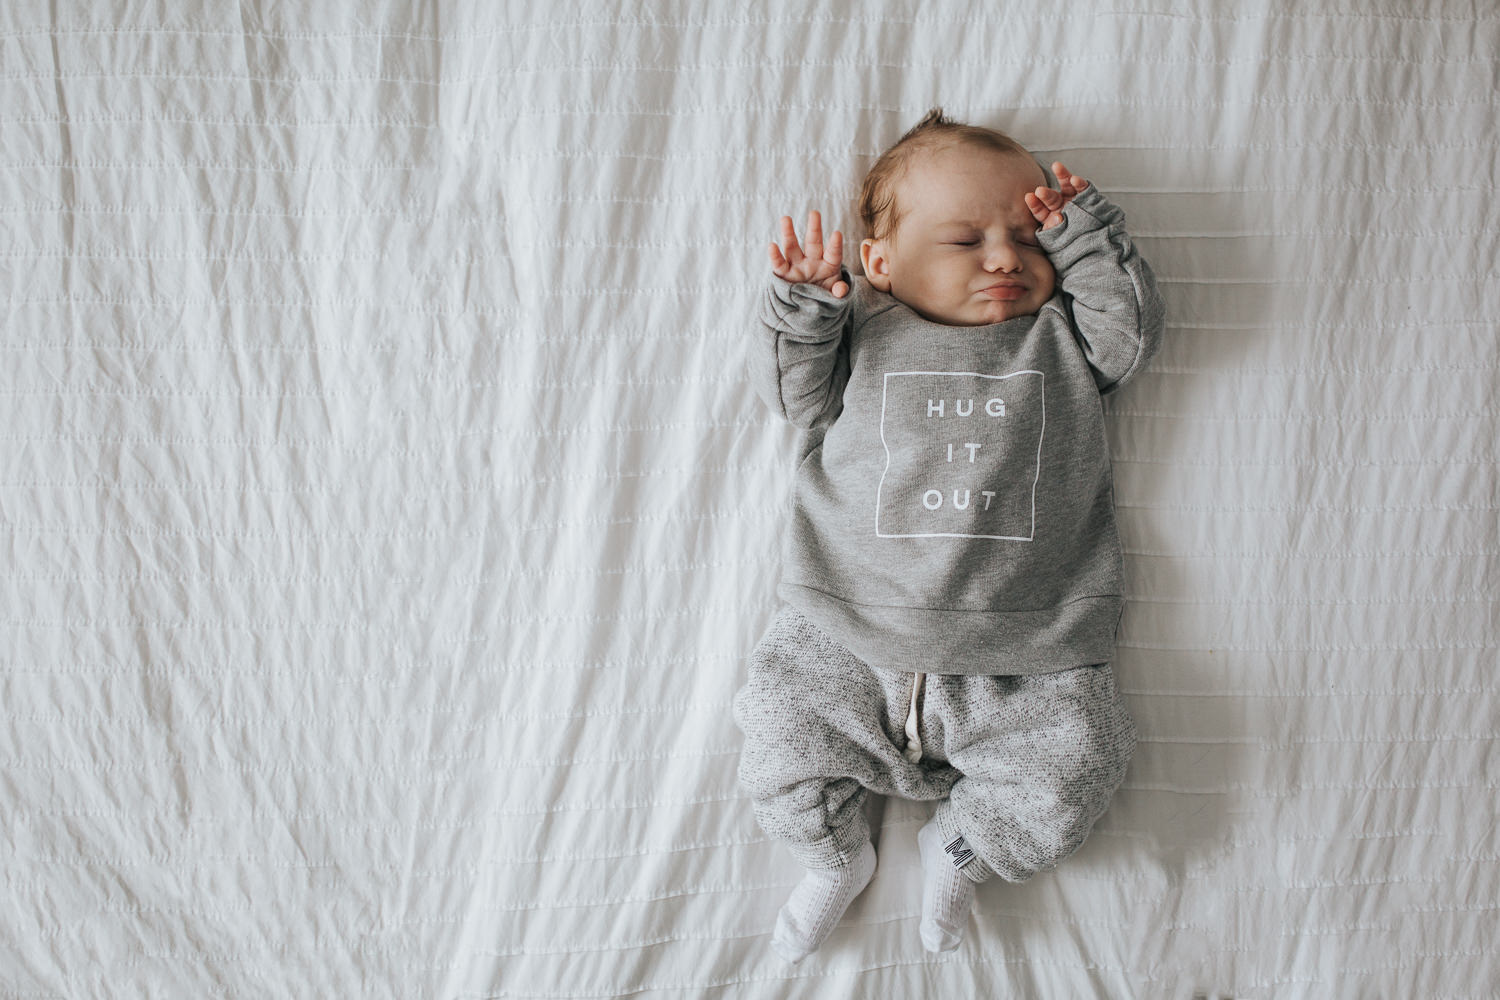 2 month old baby boy rubbing eyes lying on bed - Toronto baby photos